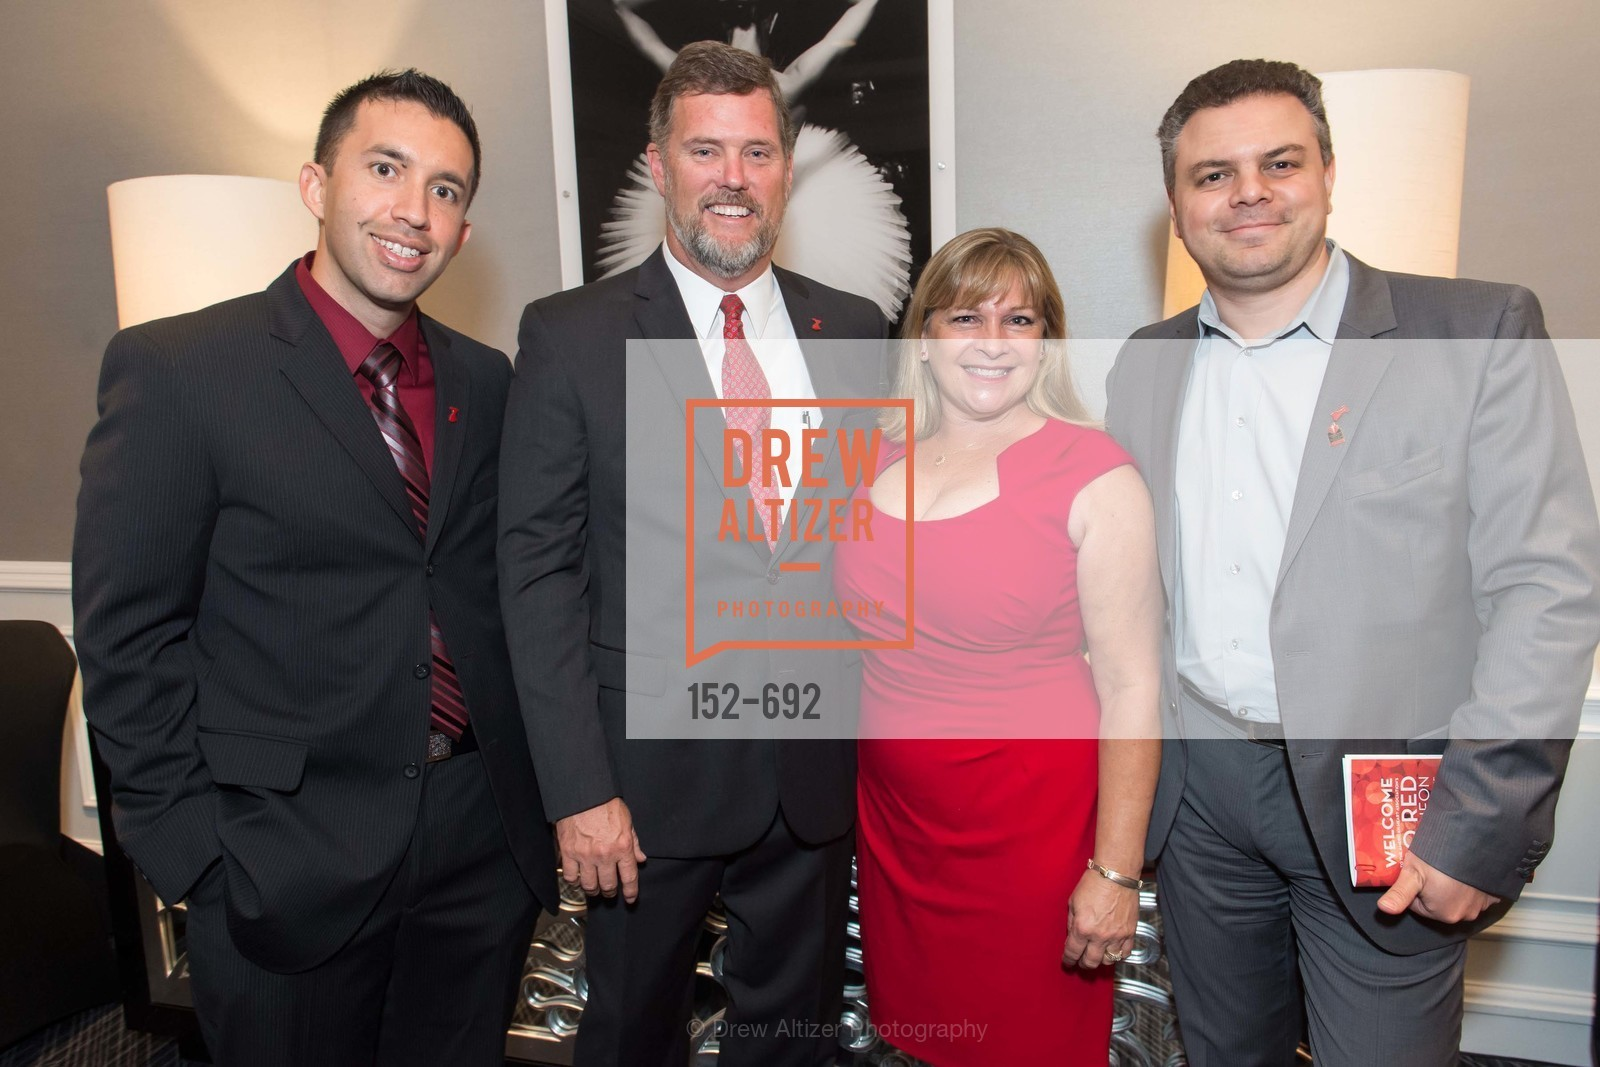 Joshua Keisel, Trey Tinner, Nancy Tinner, Liviu Klein, 2015 GoRed for Women Luncheon, US, May 1st, 2015,Drew Altizer, Drew Altizer Photography, full-service agency, private events, San Francisco photographer, photographer california